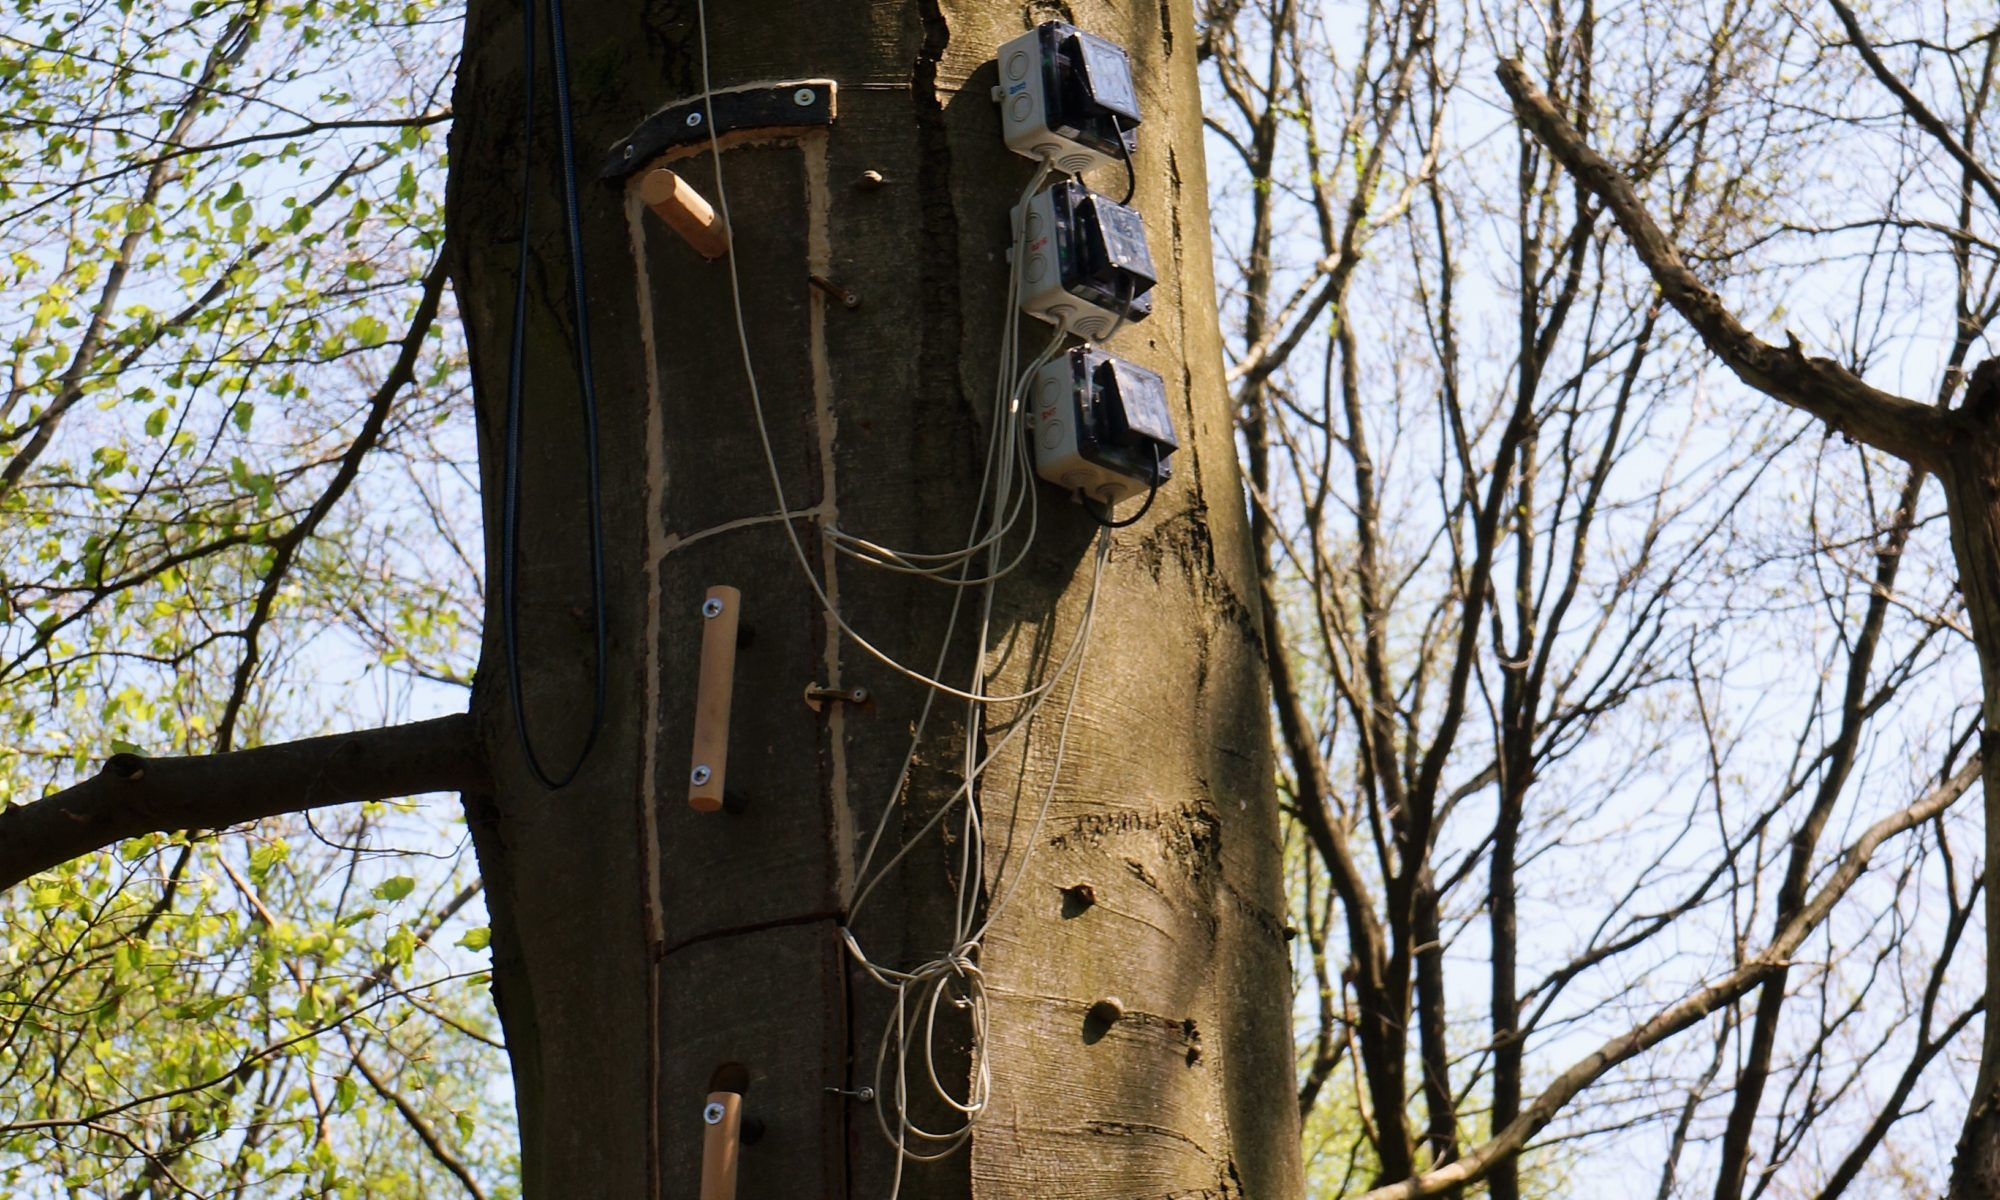 Toms Tree mit Messstationen